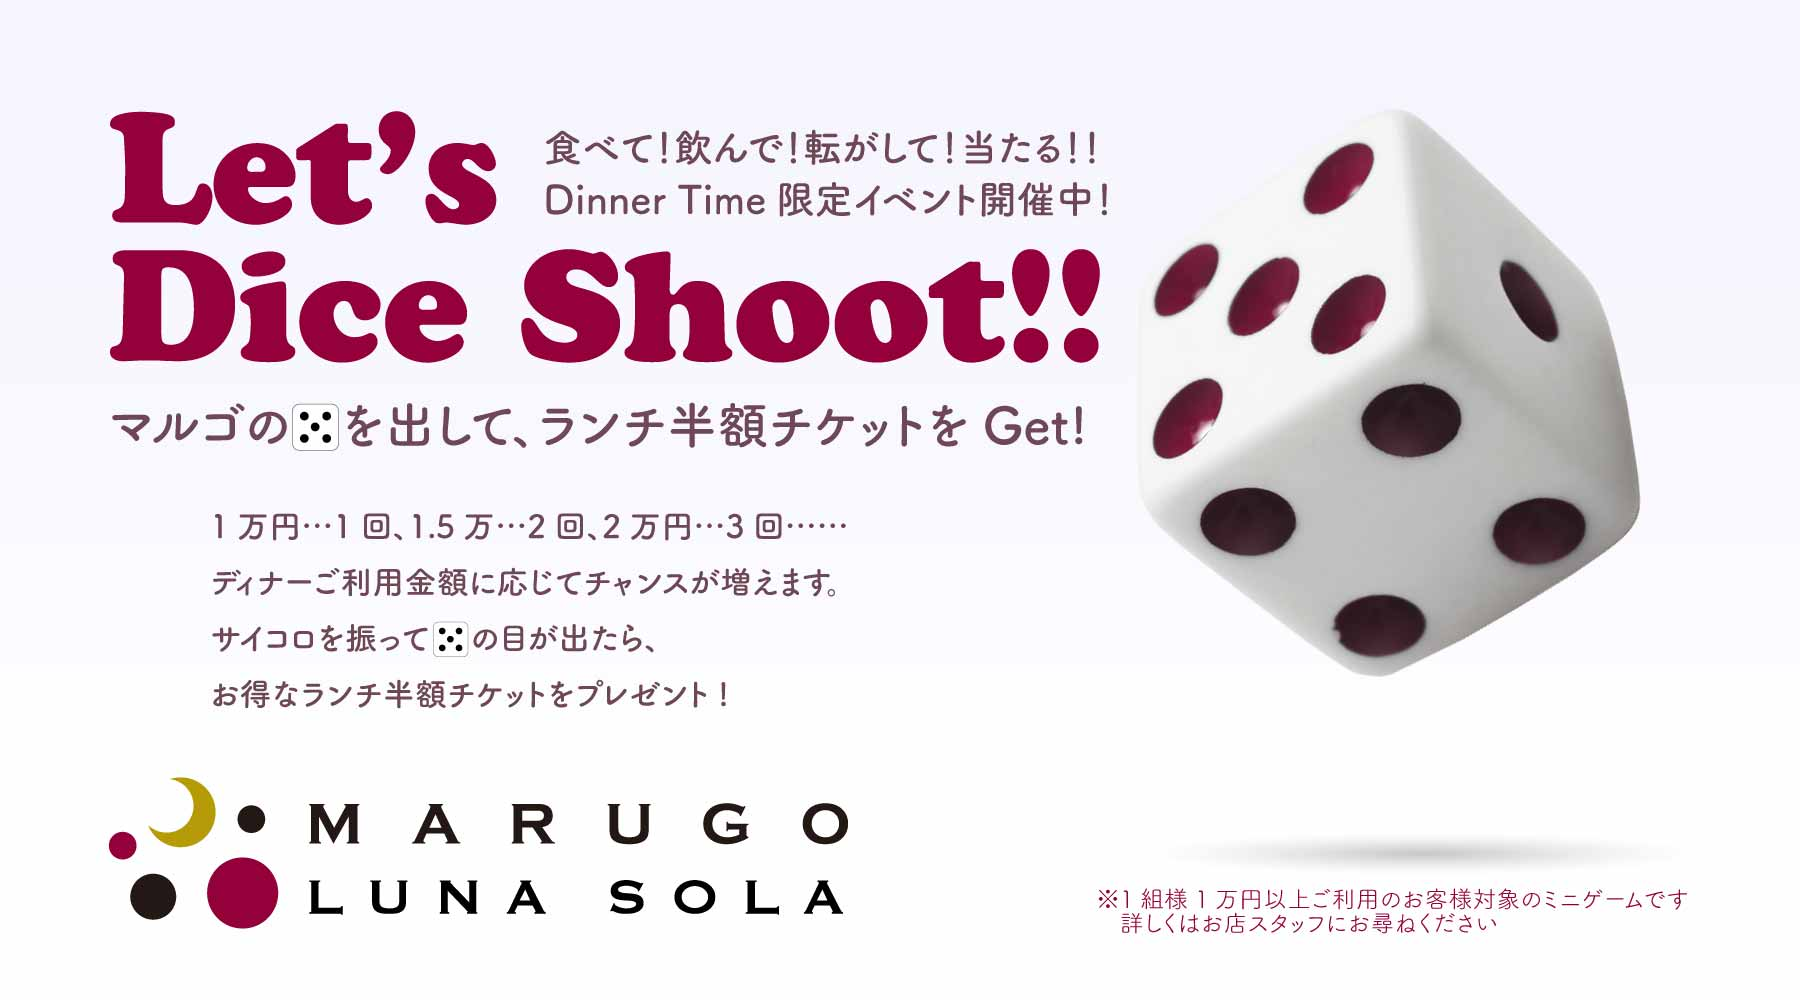 MARUGO LUNASOLA Let's Shoot Dice!!